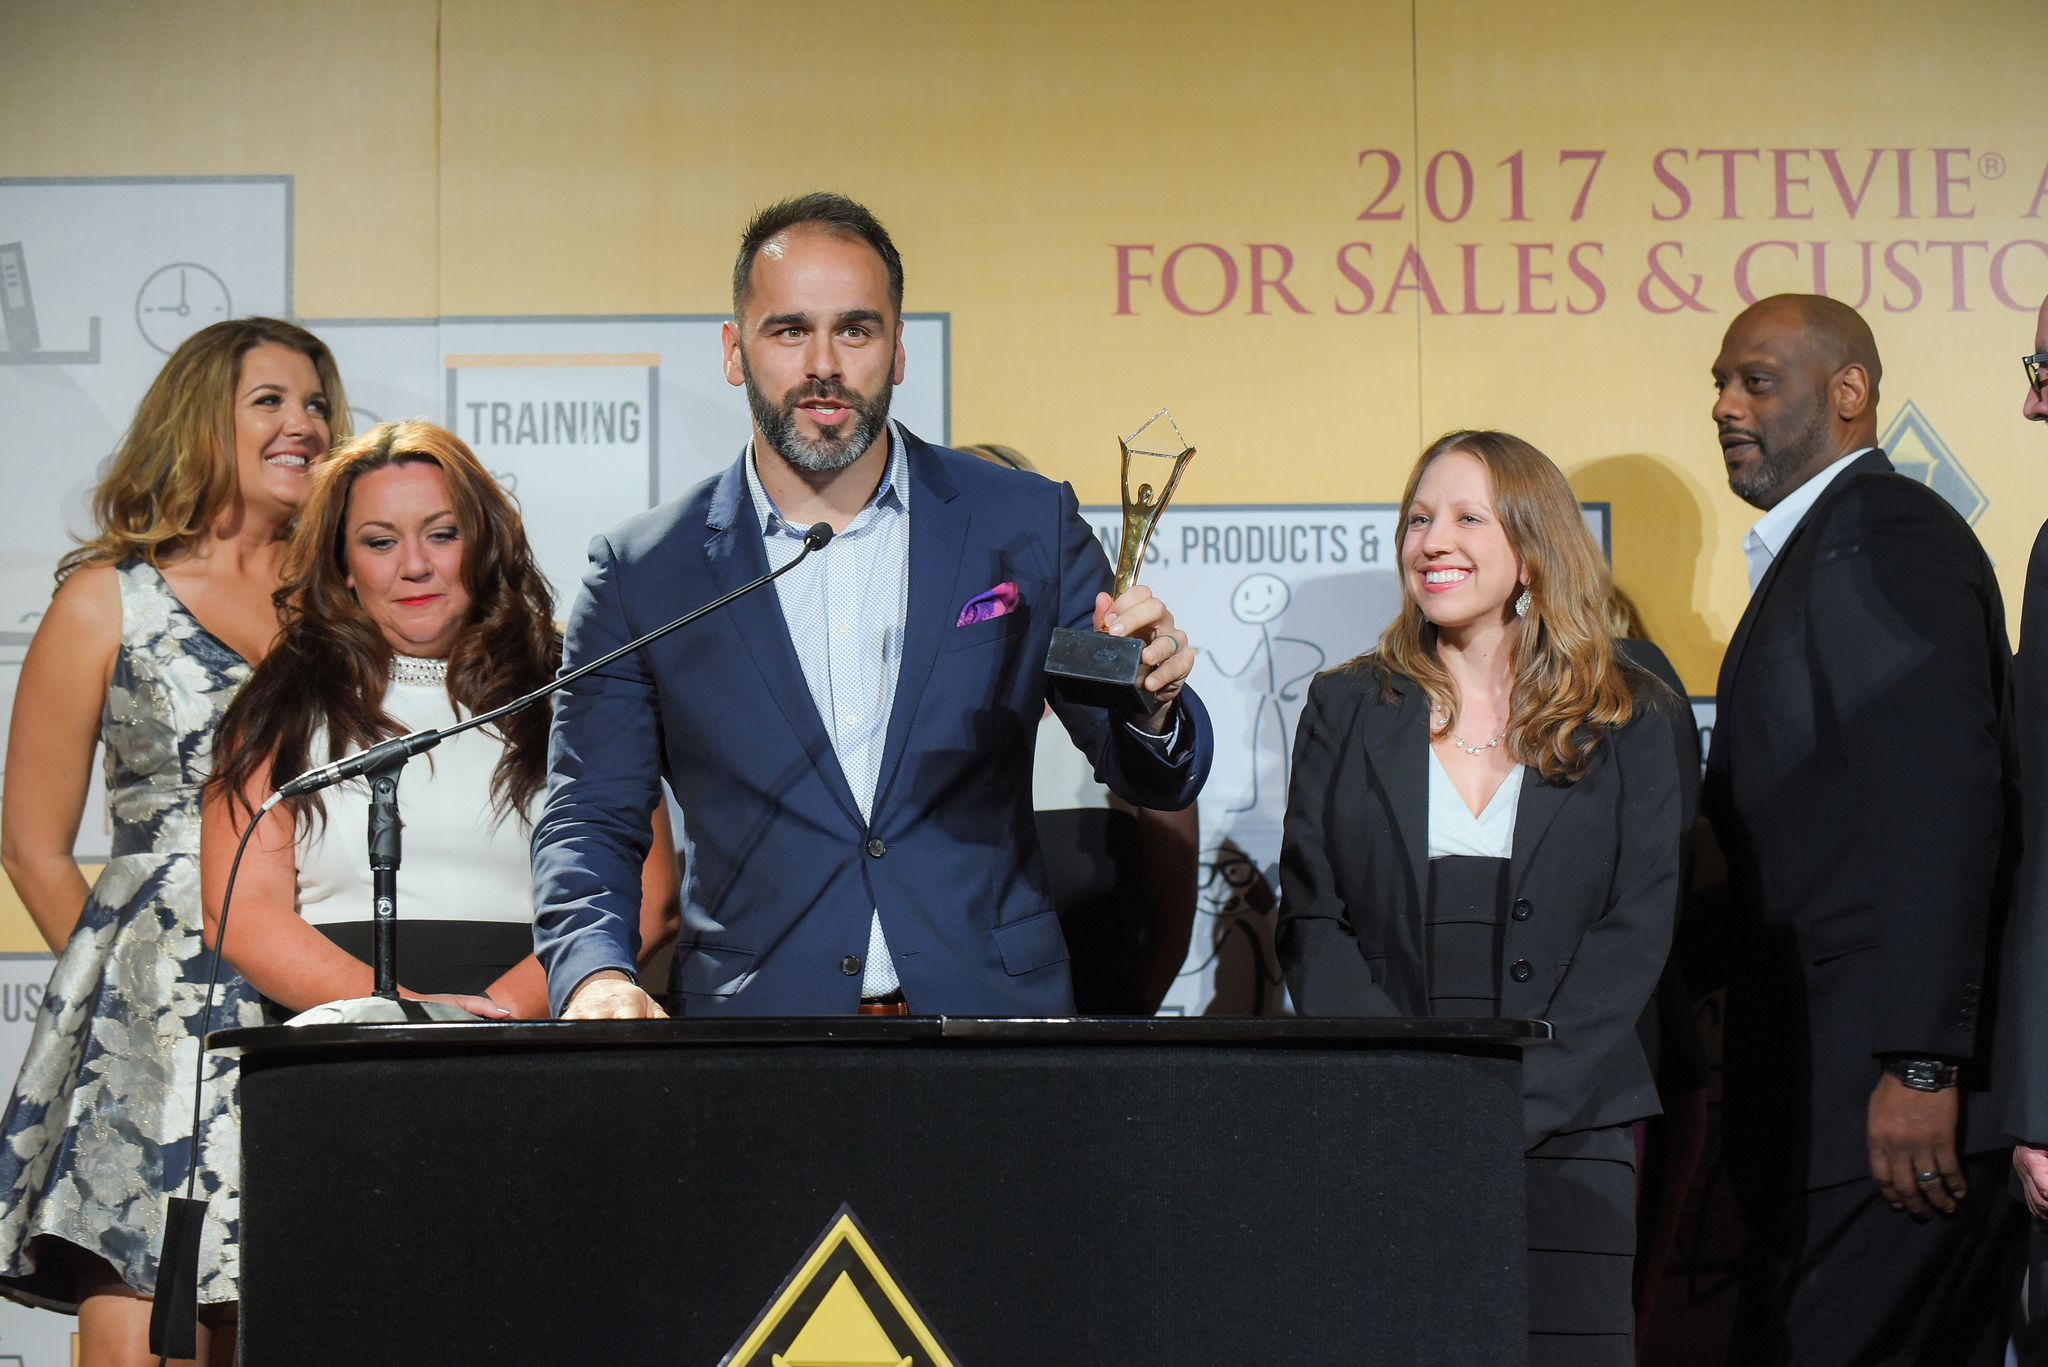 Stevie Awards for Sales & Customer Service